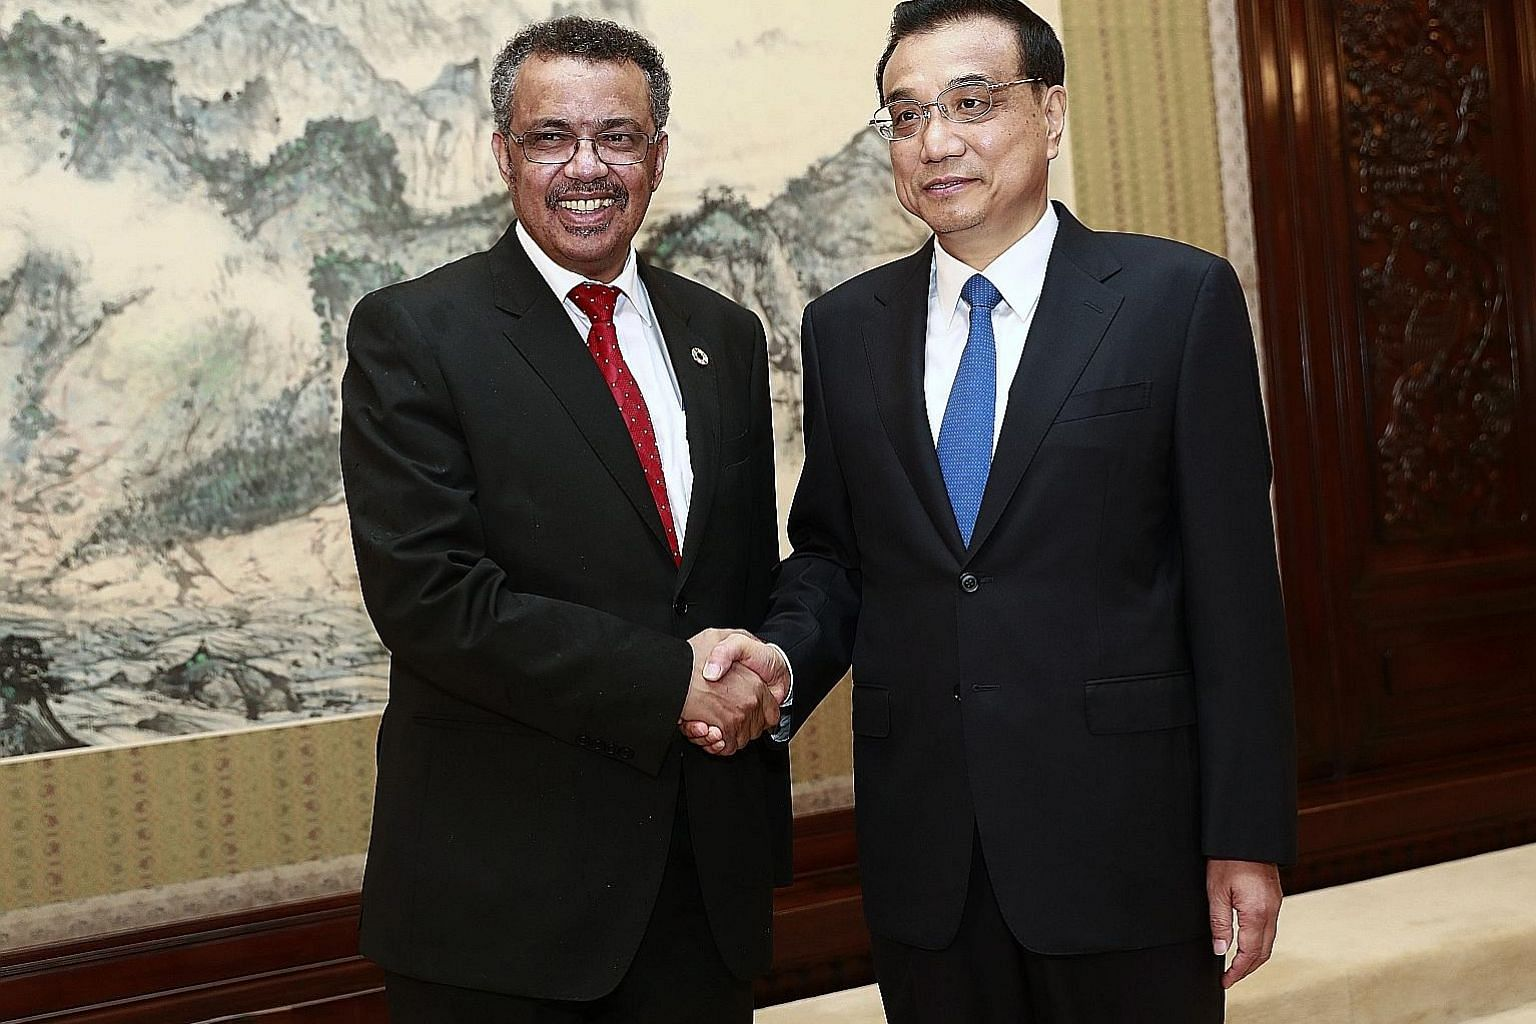 Dr Tedros Adhanom, the director-general of WHO, with Chinese Premier Li Keqiang at a meeting in Beijing yesterday. Dr Adhanom has hailed the Chinese-led health initiative as visionary.